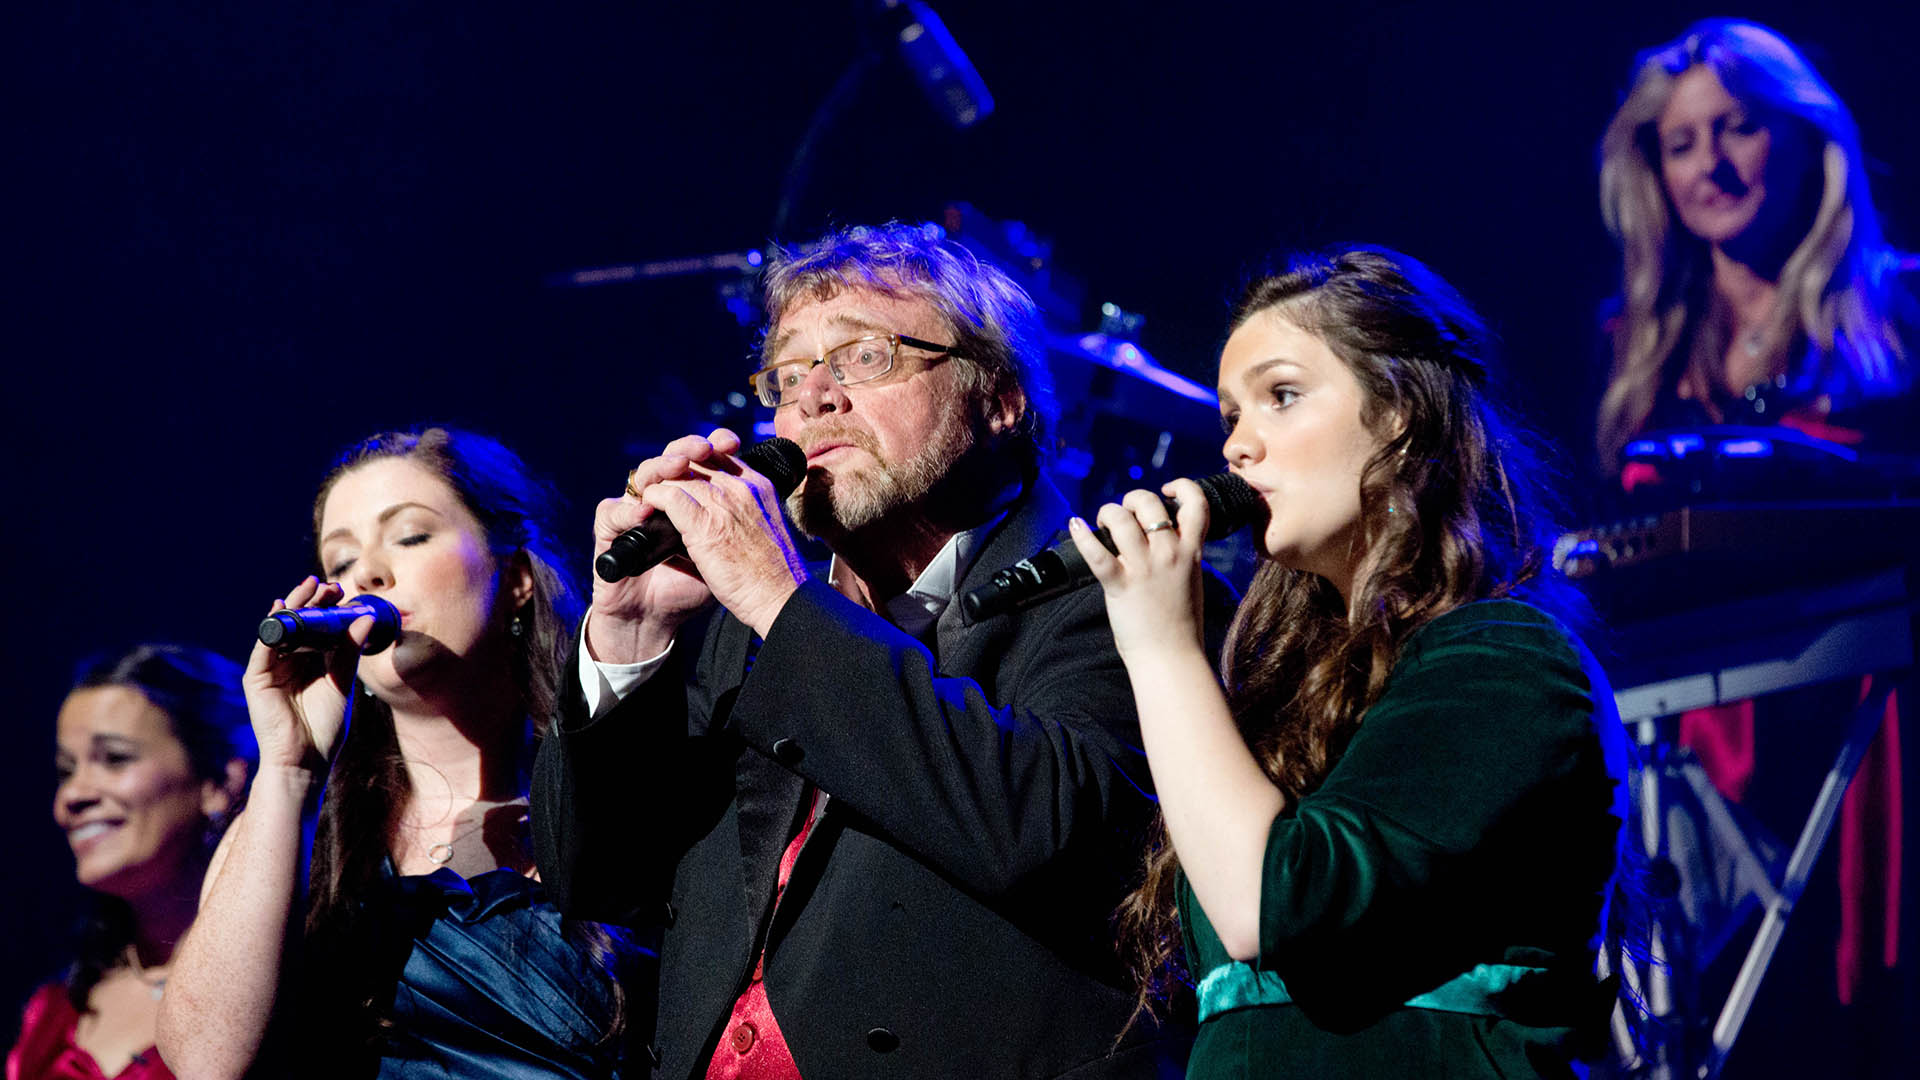 Rock to the rhythm of Mannheim Steamroller in special pledge event